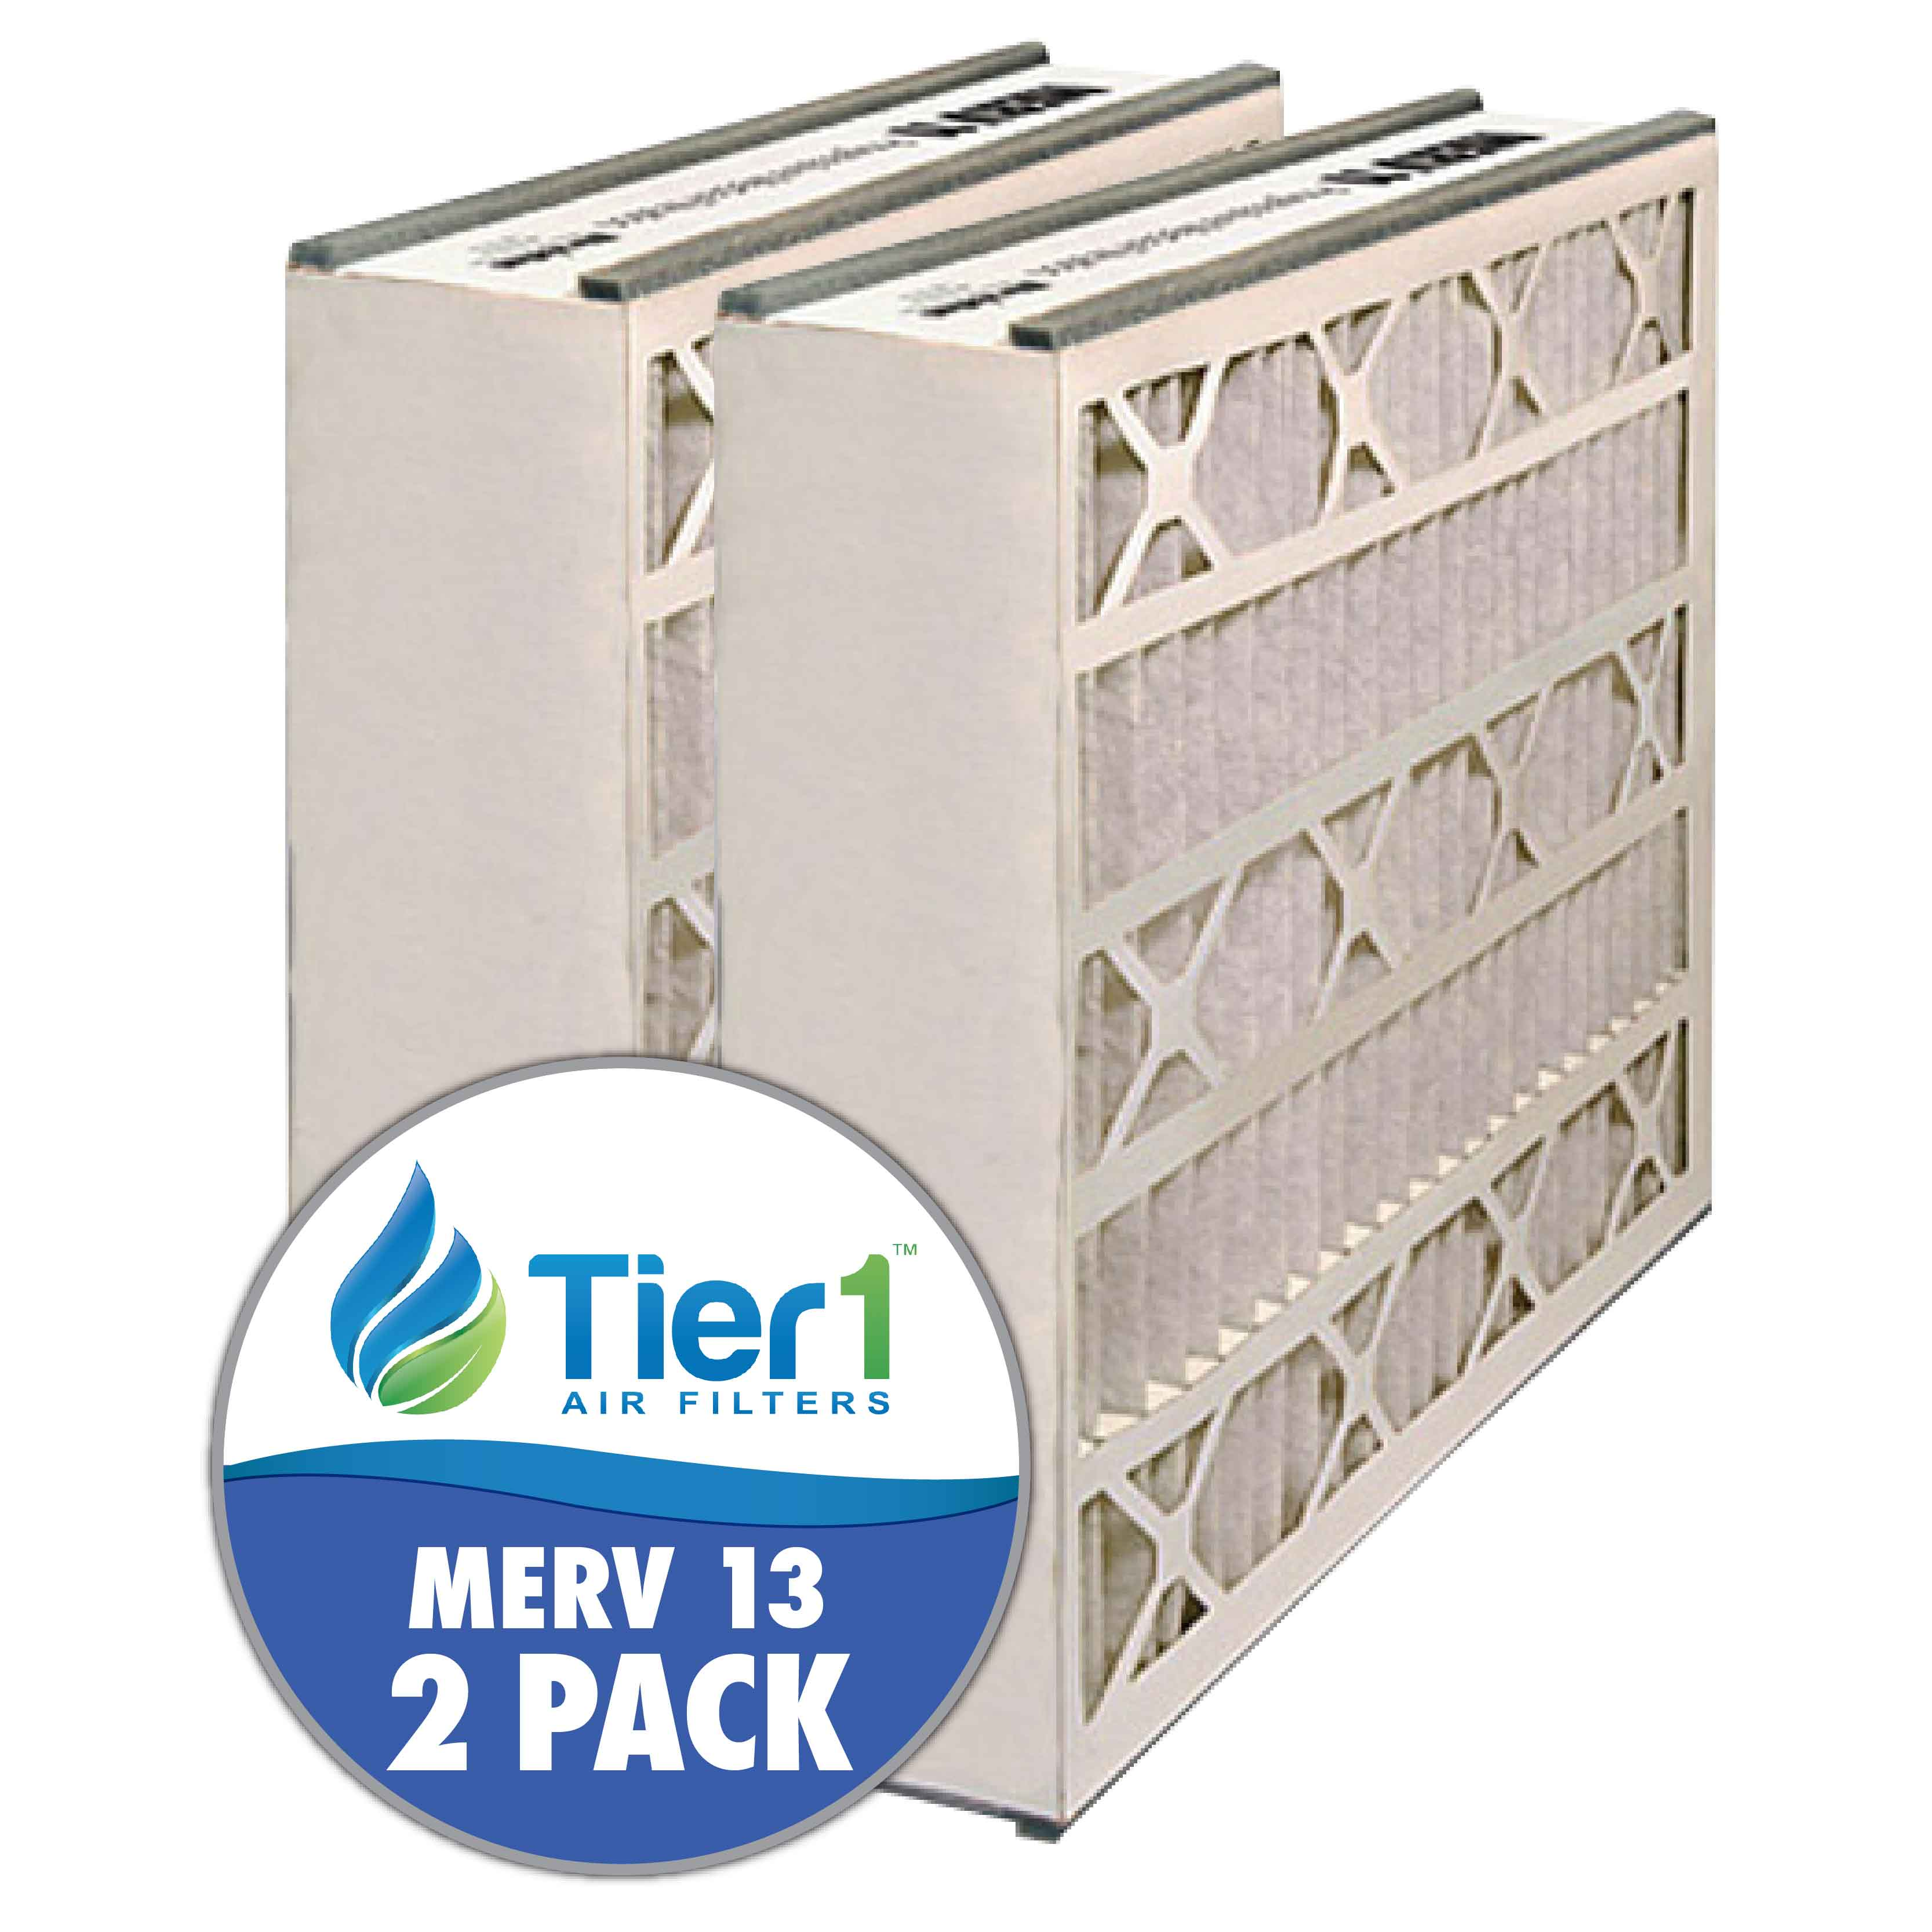 20x20x5 255649-103 & 259112-103 Trion / Air Bear MERV 13 Comparable Air Filter by Tier1 (2-pack) TIER1-RDPAB052020M13